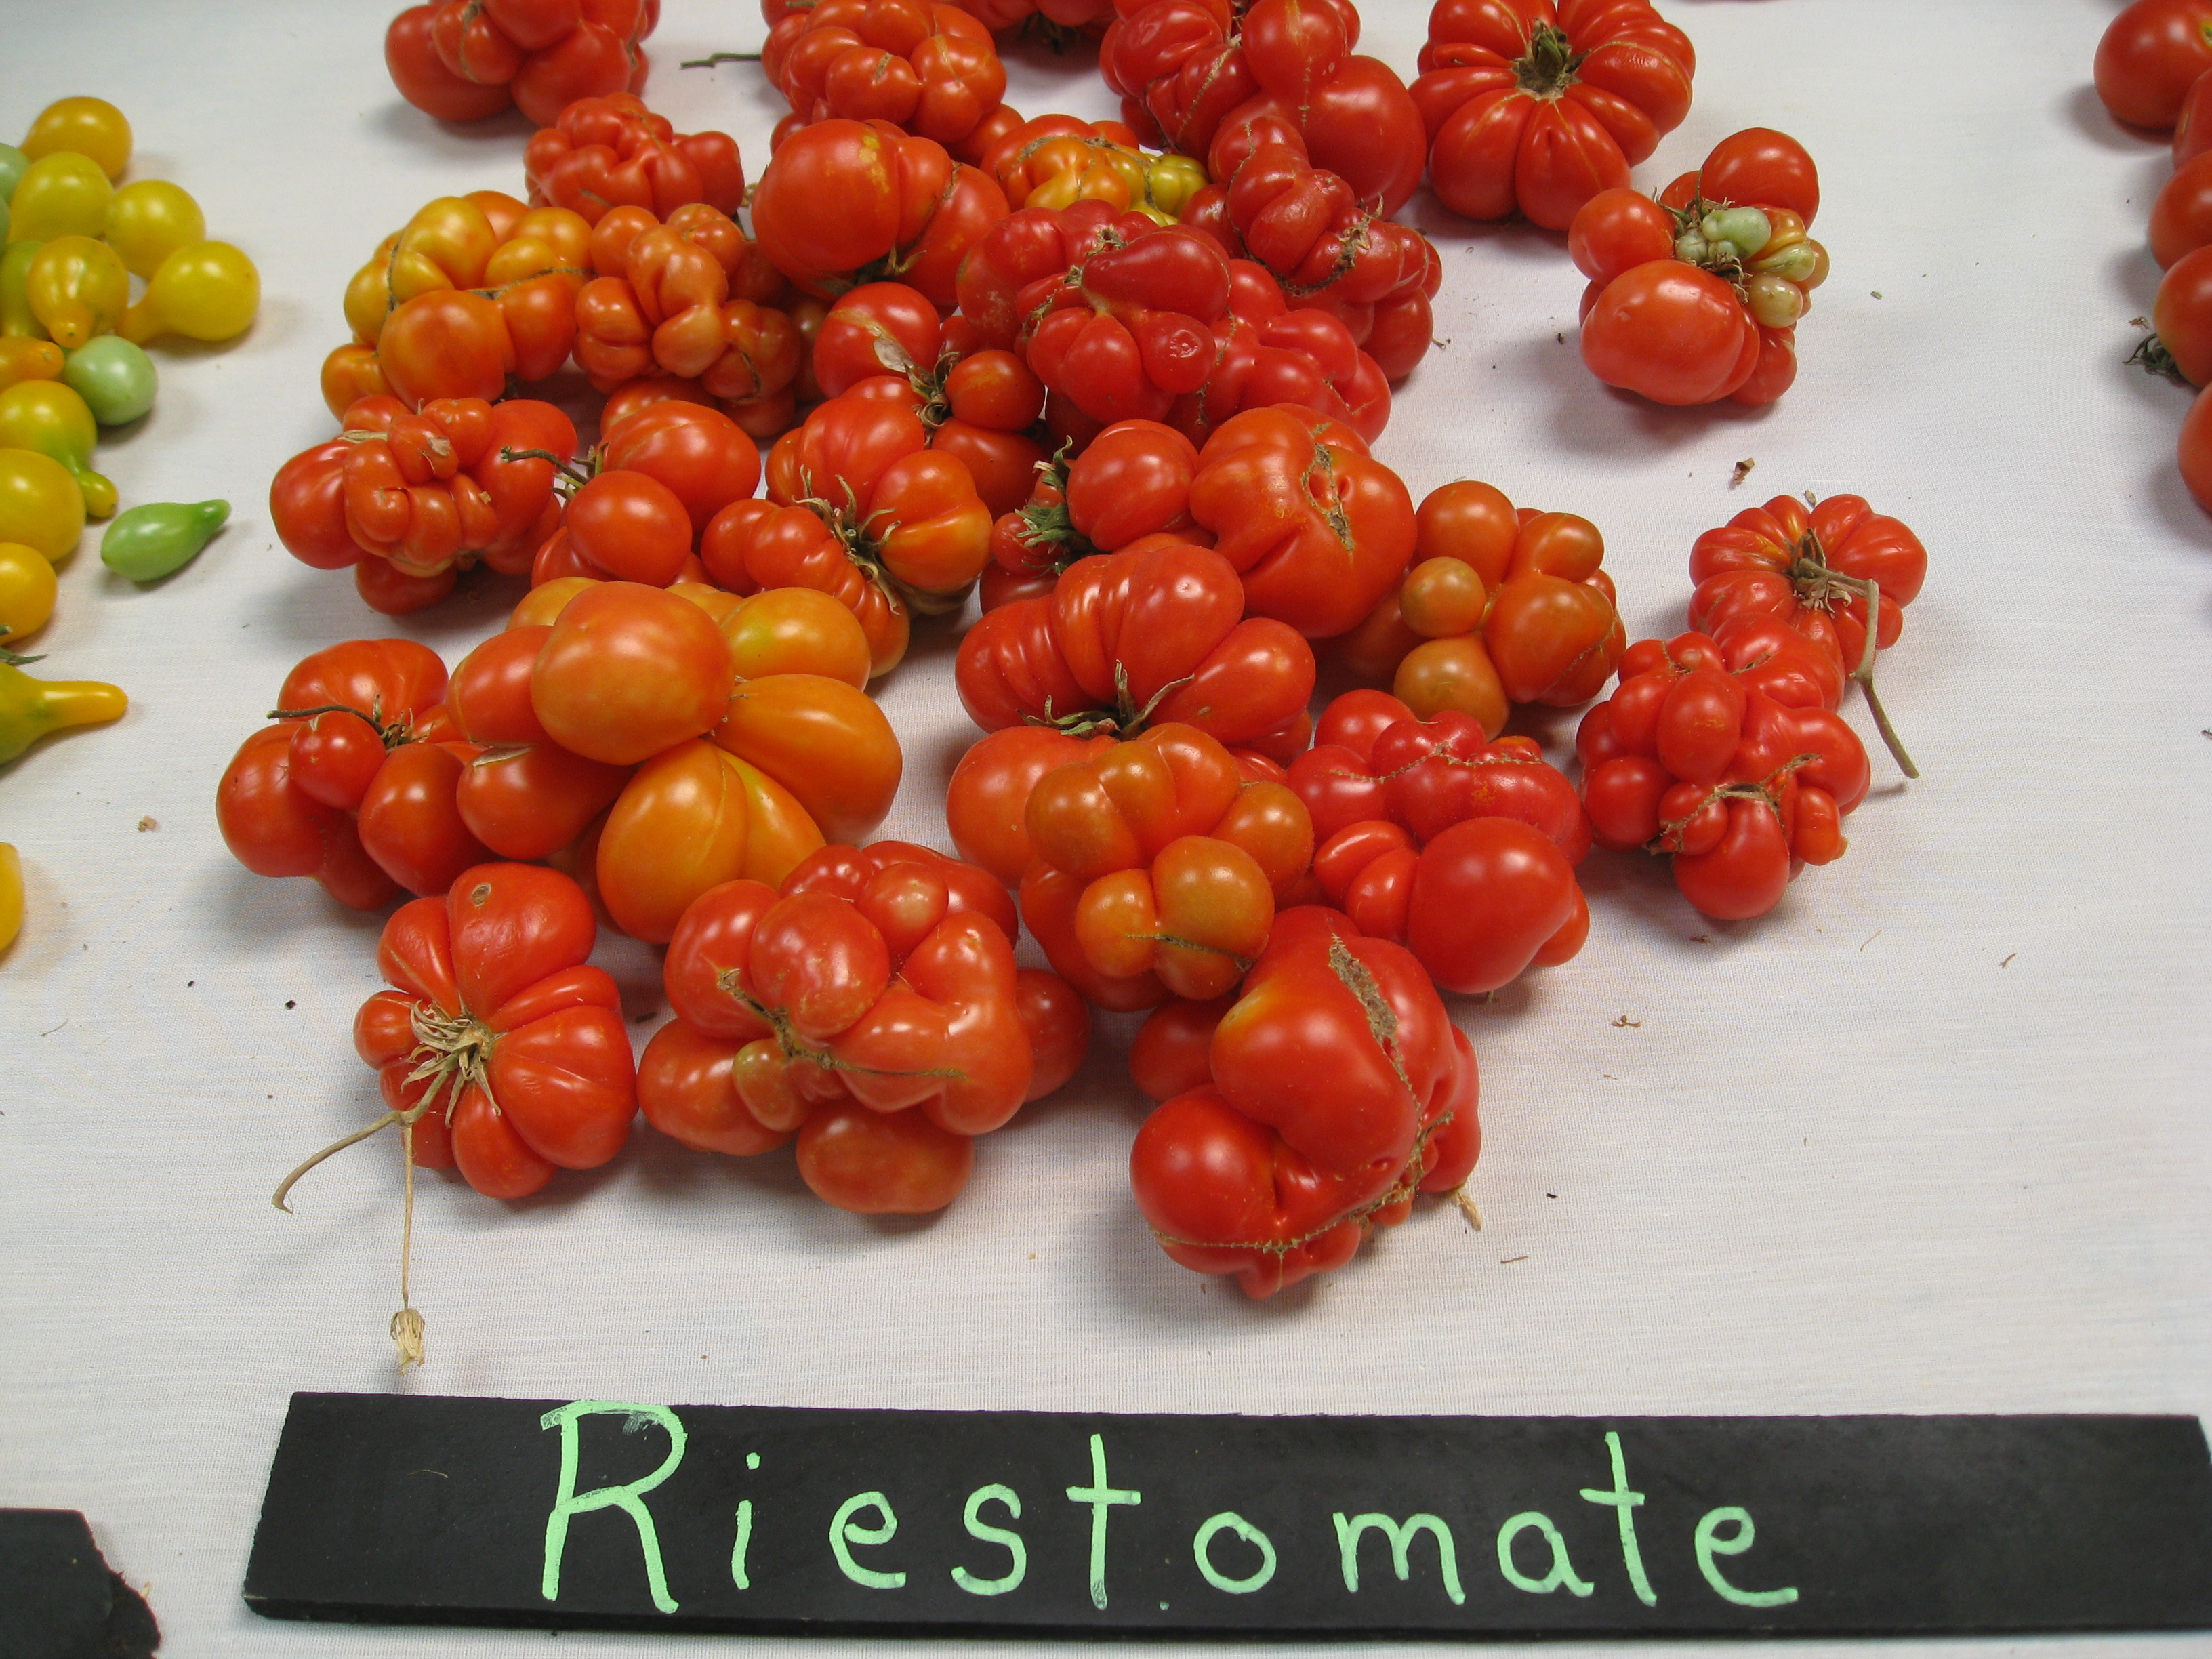 The travelers tomato, live and in person!